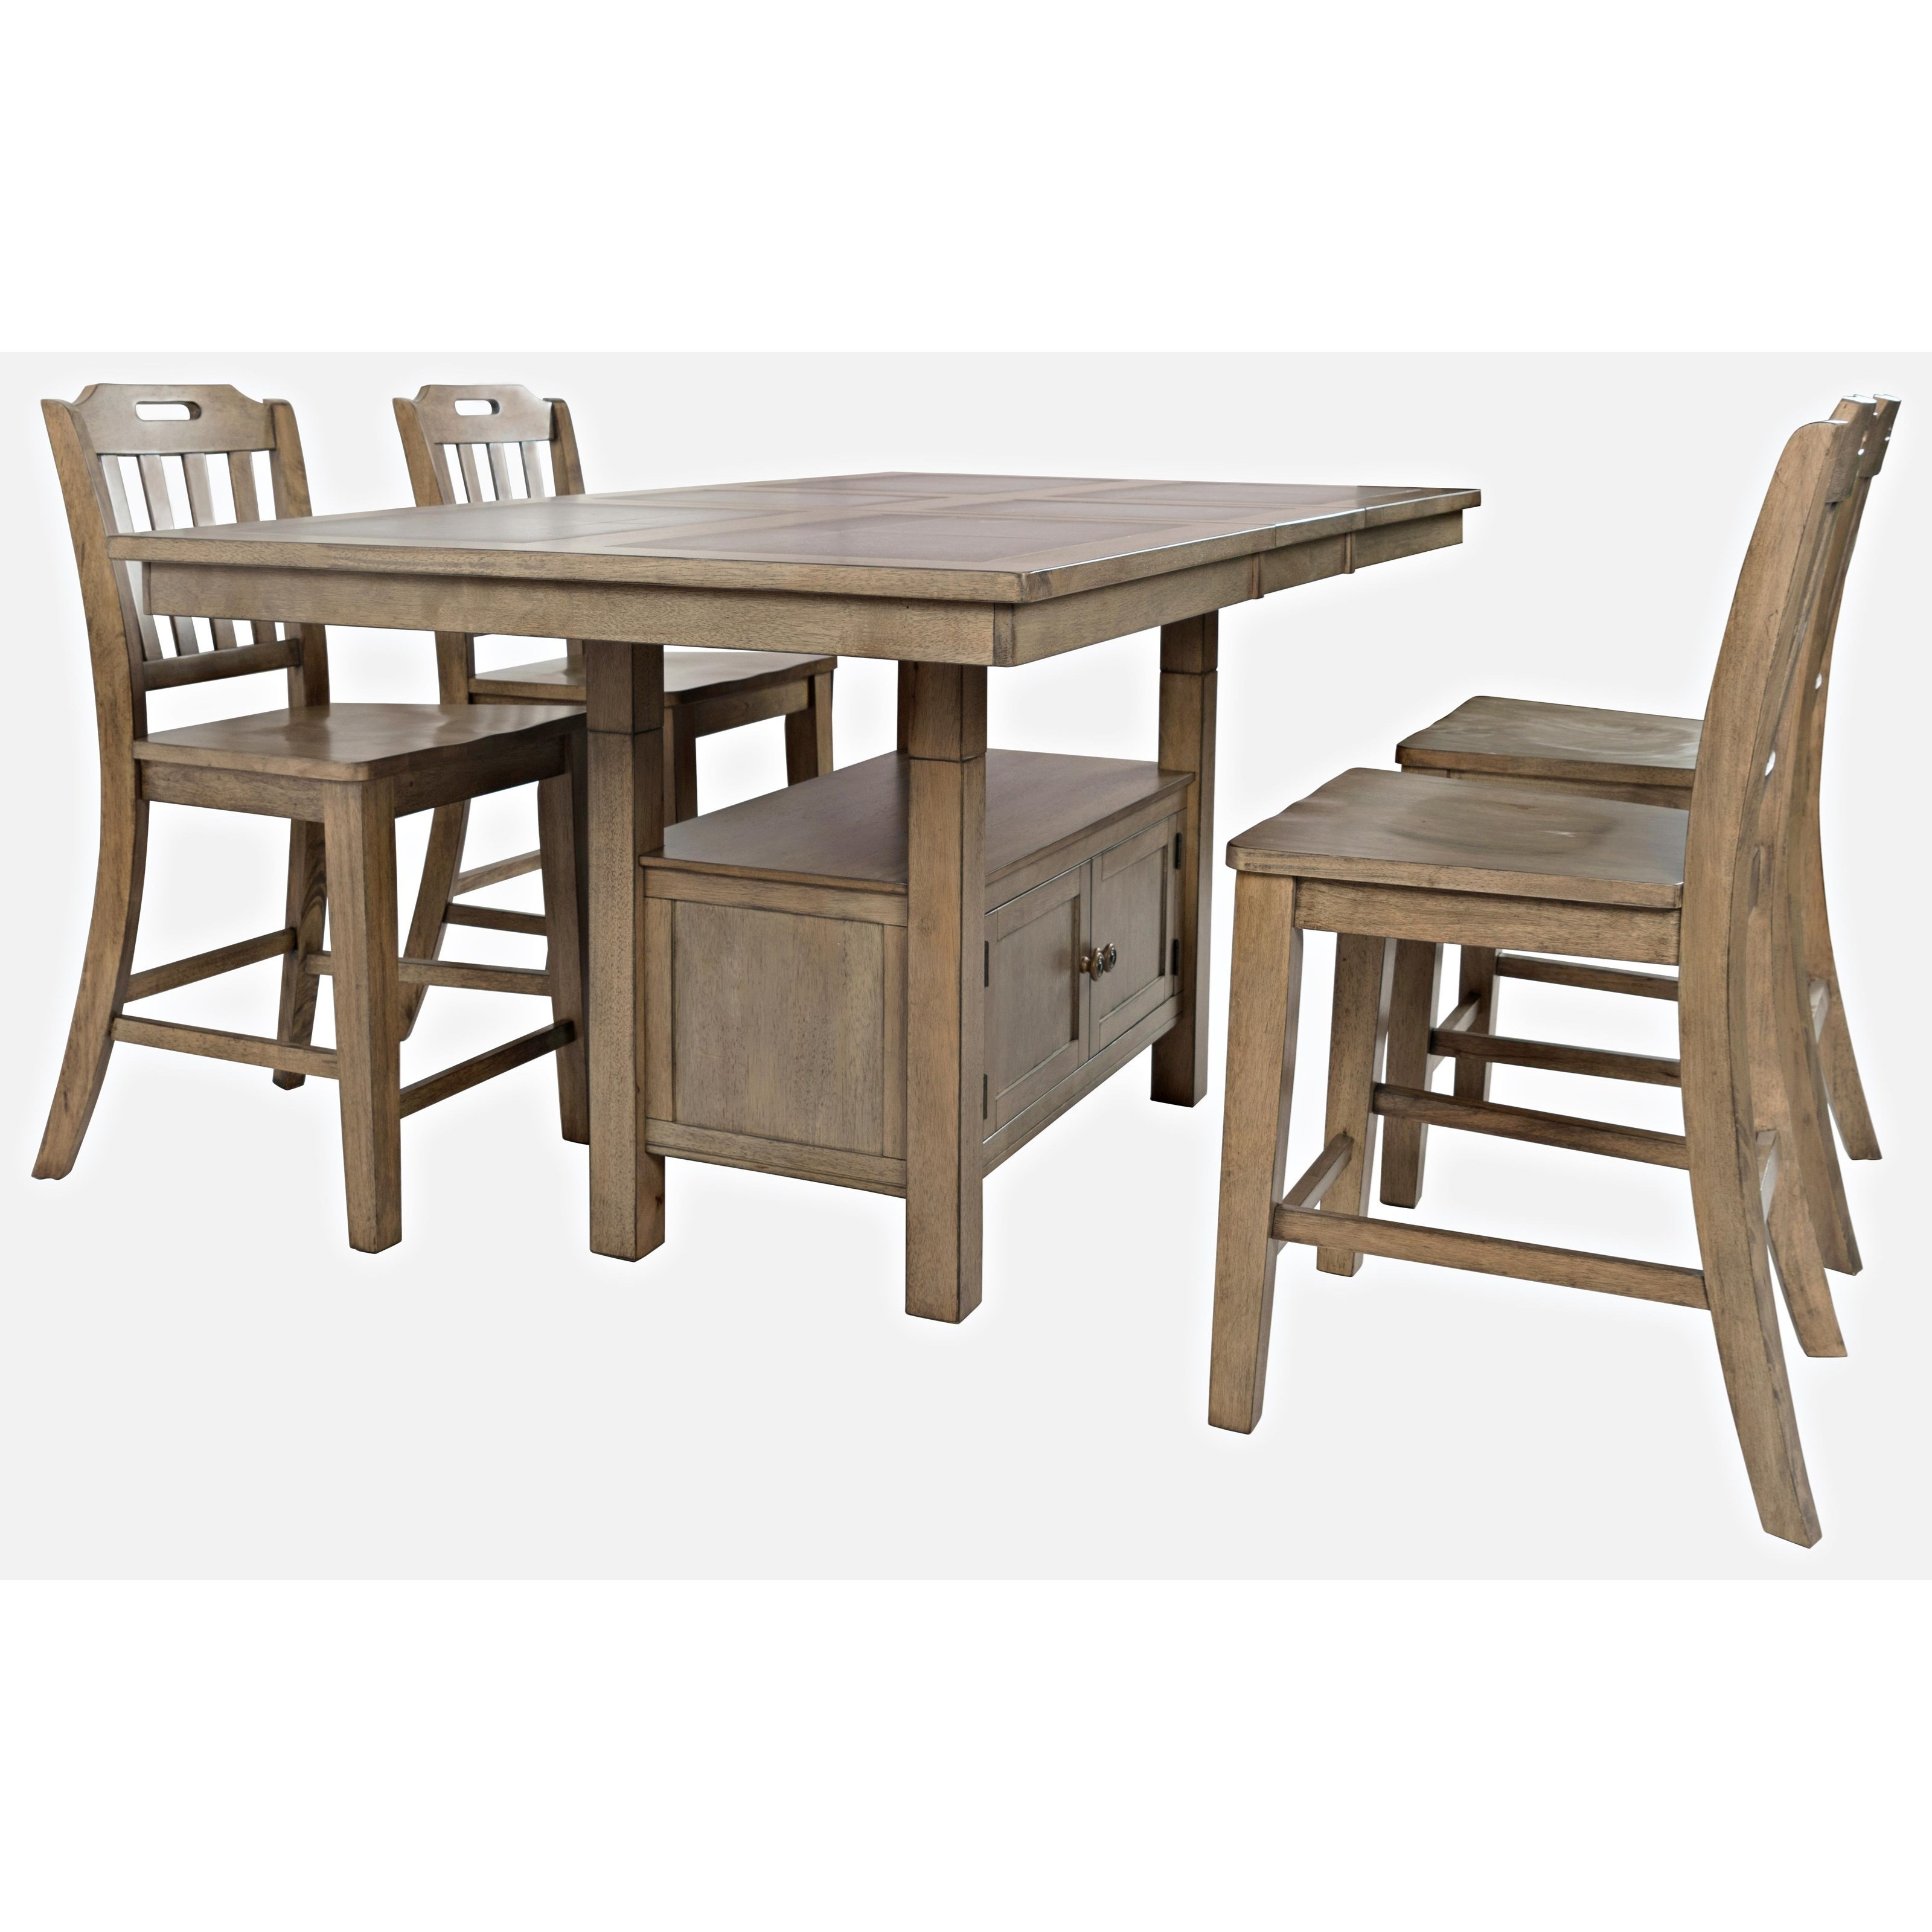 Prescott Park 5-Piece Dining Table and Chair Set by VFM Signature at Virginia Furniture Market